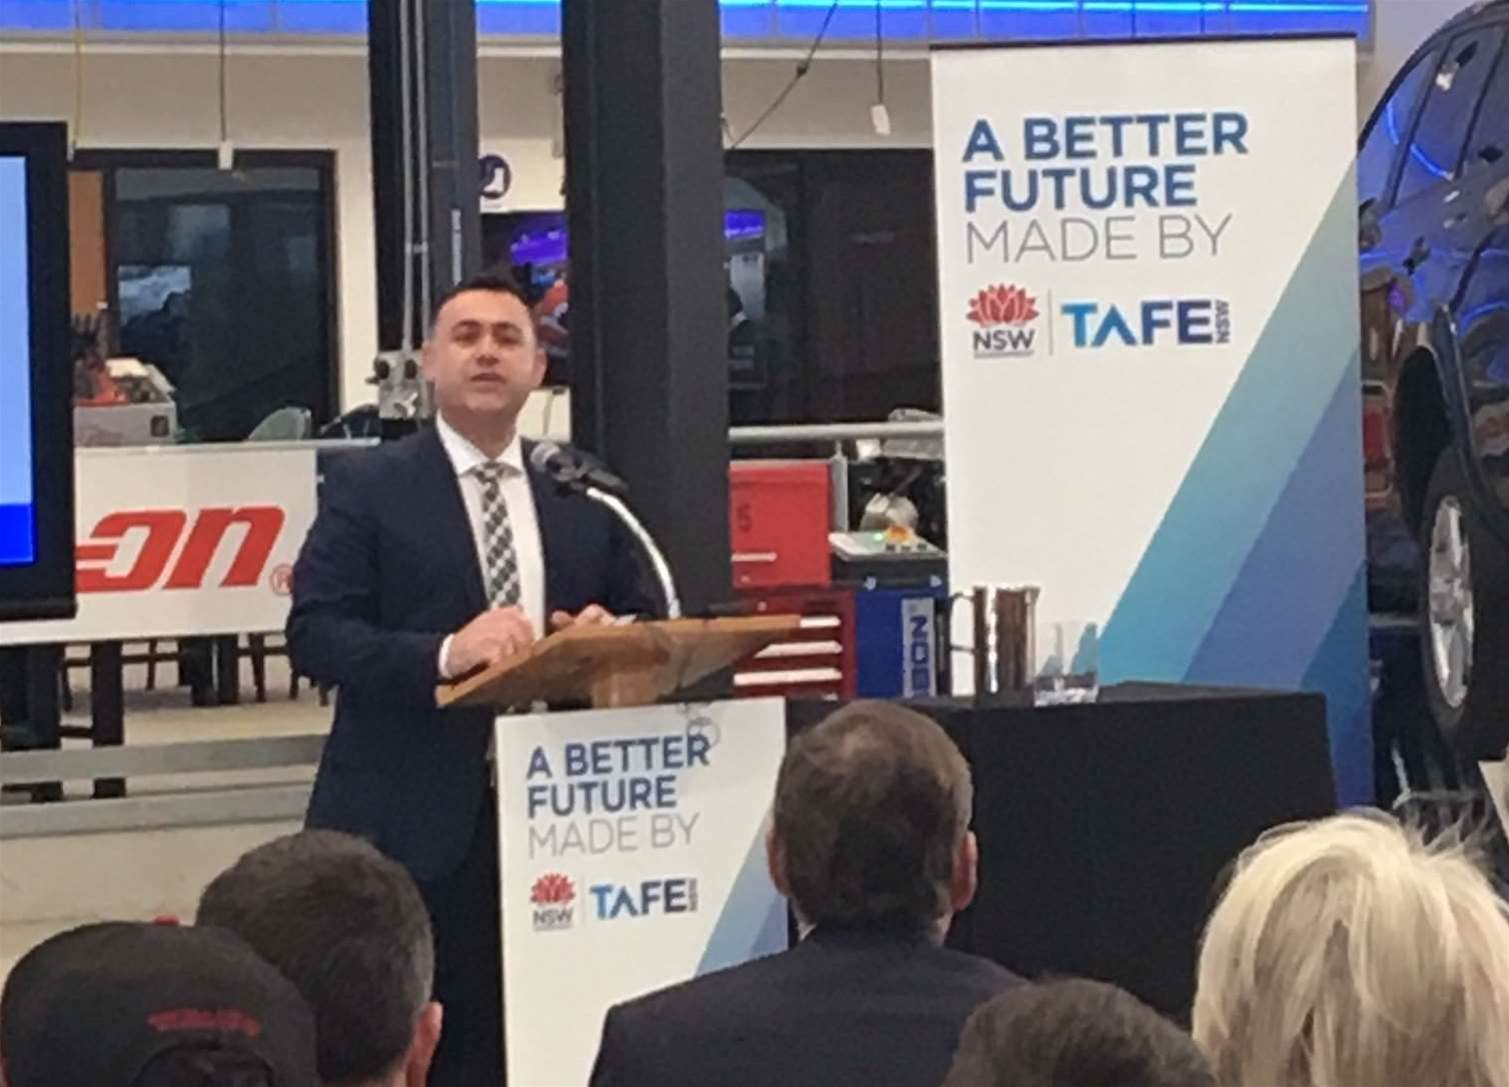 NSW TAFE could become a player in online education market